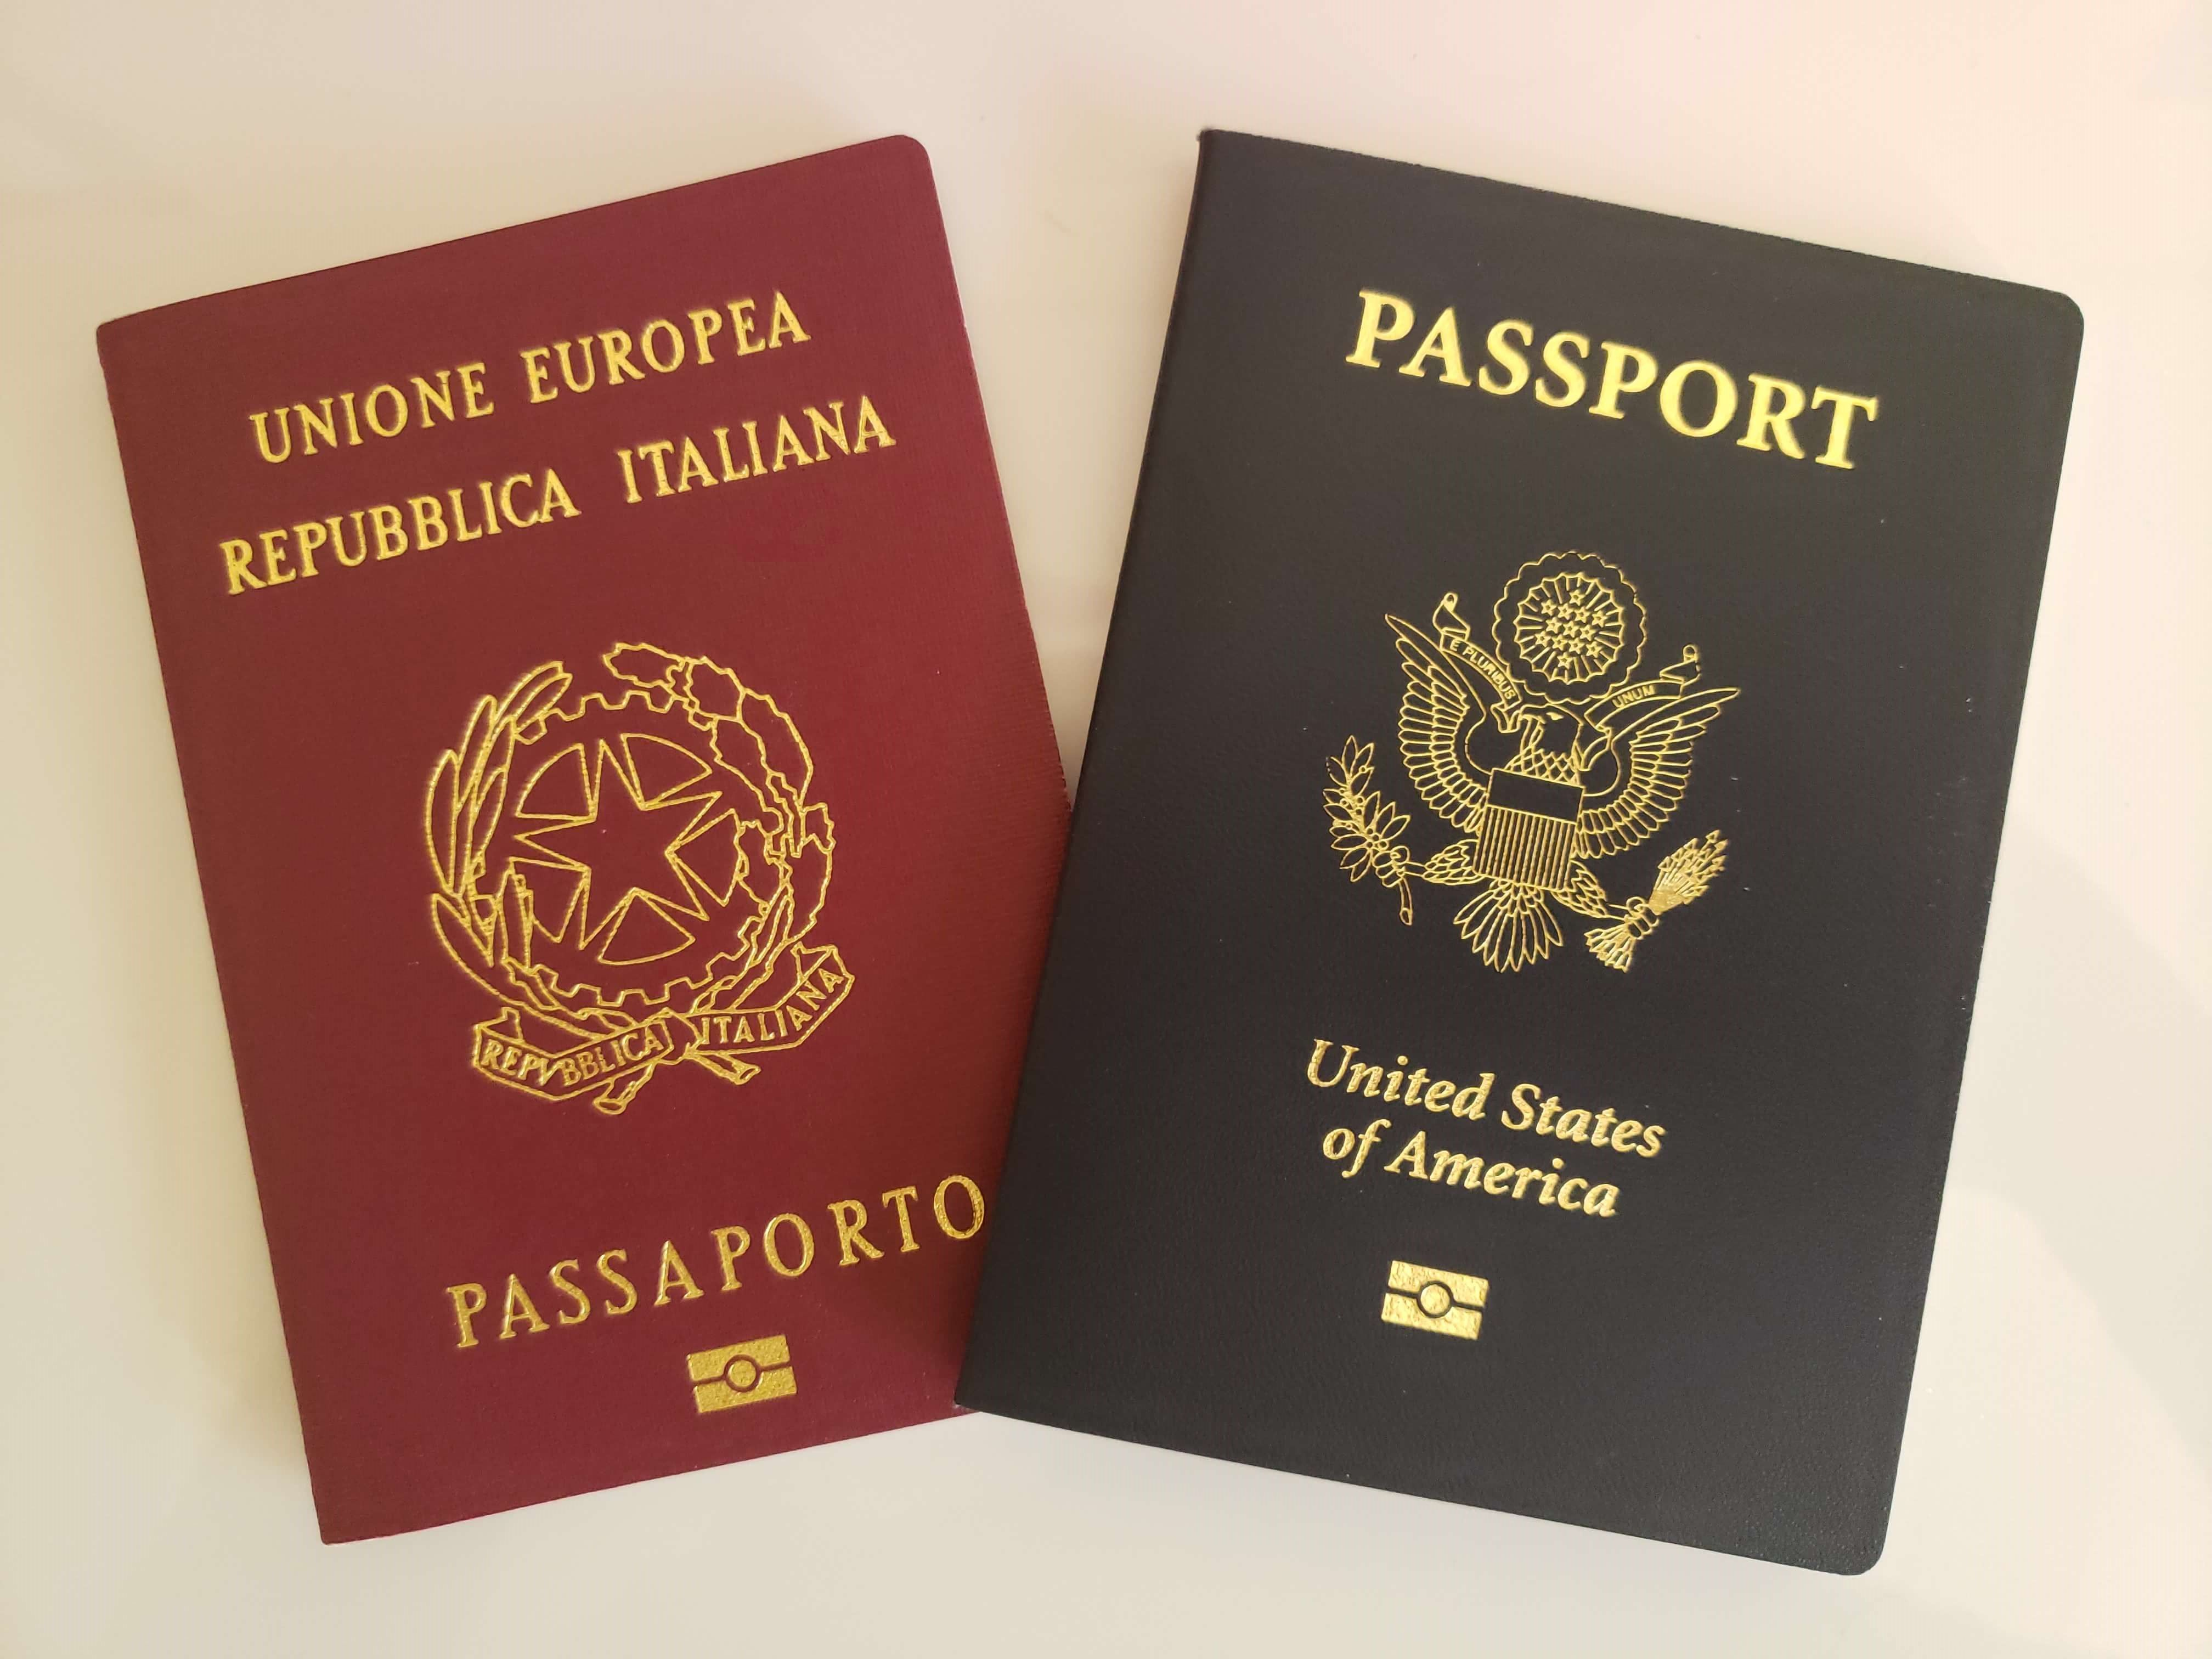 a353e274273ea9e2ae692cac0121d857 - How To Get Dual Citizenship In Usa And Philippines